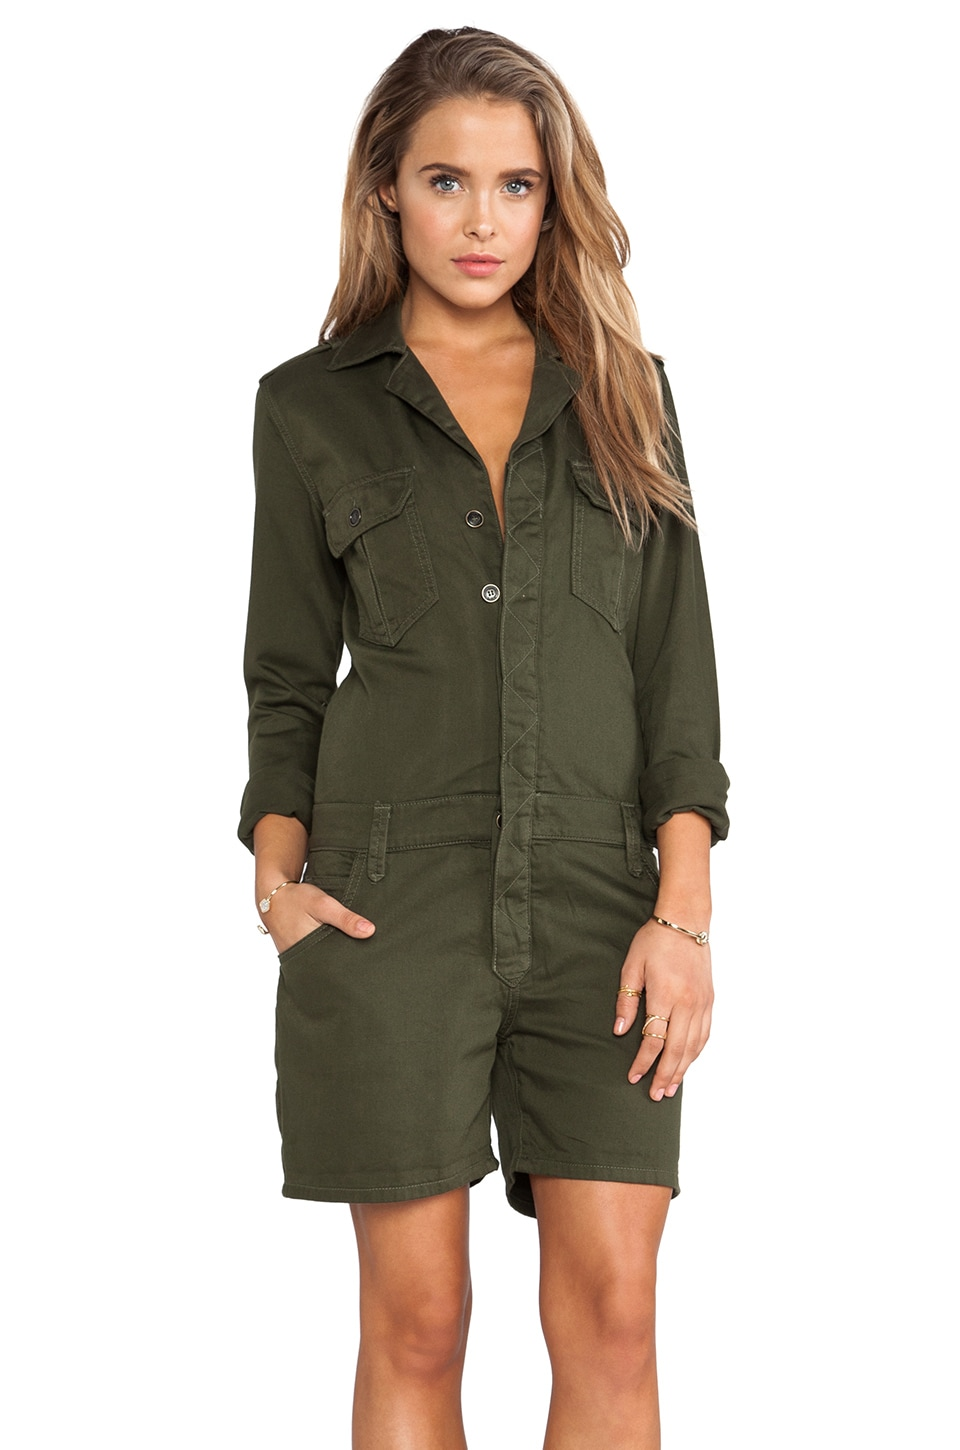 Joe's Jeans Military Shirttail Romper in Olive